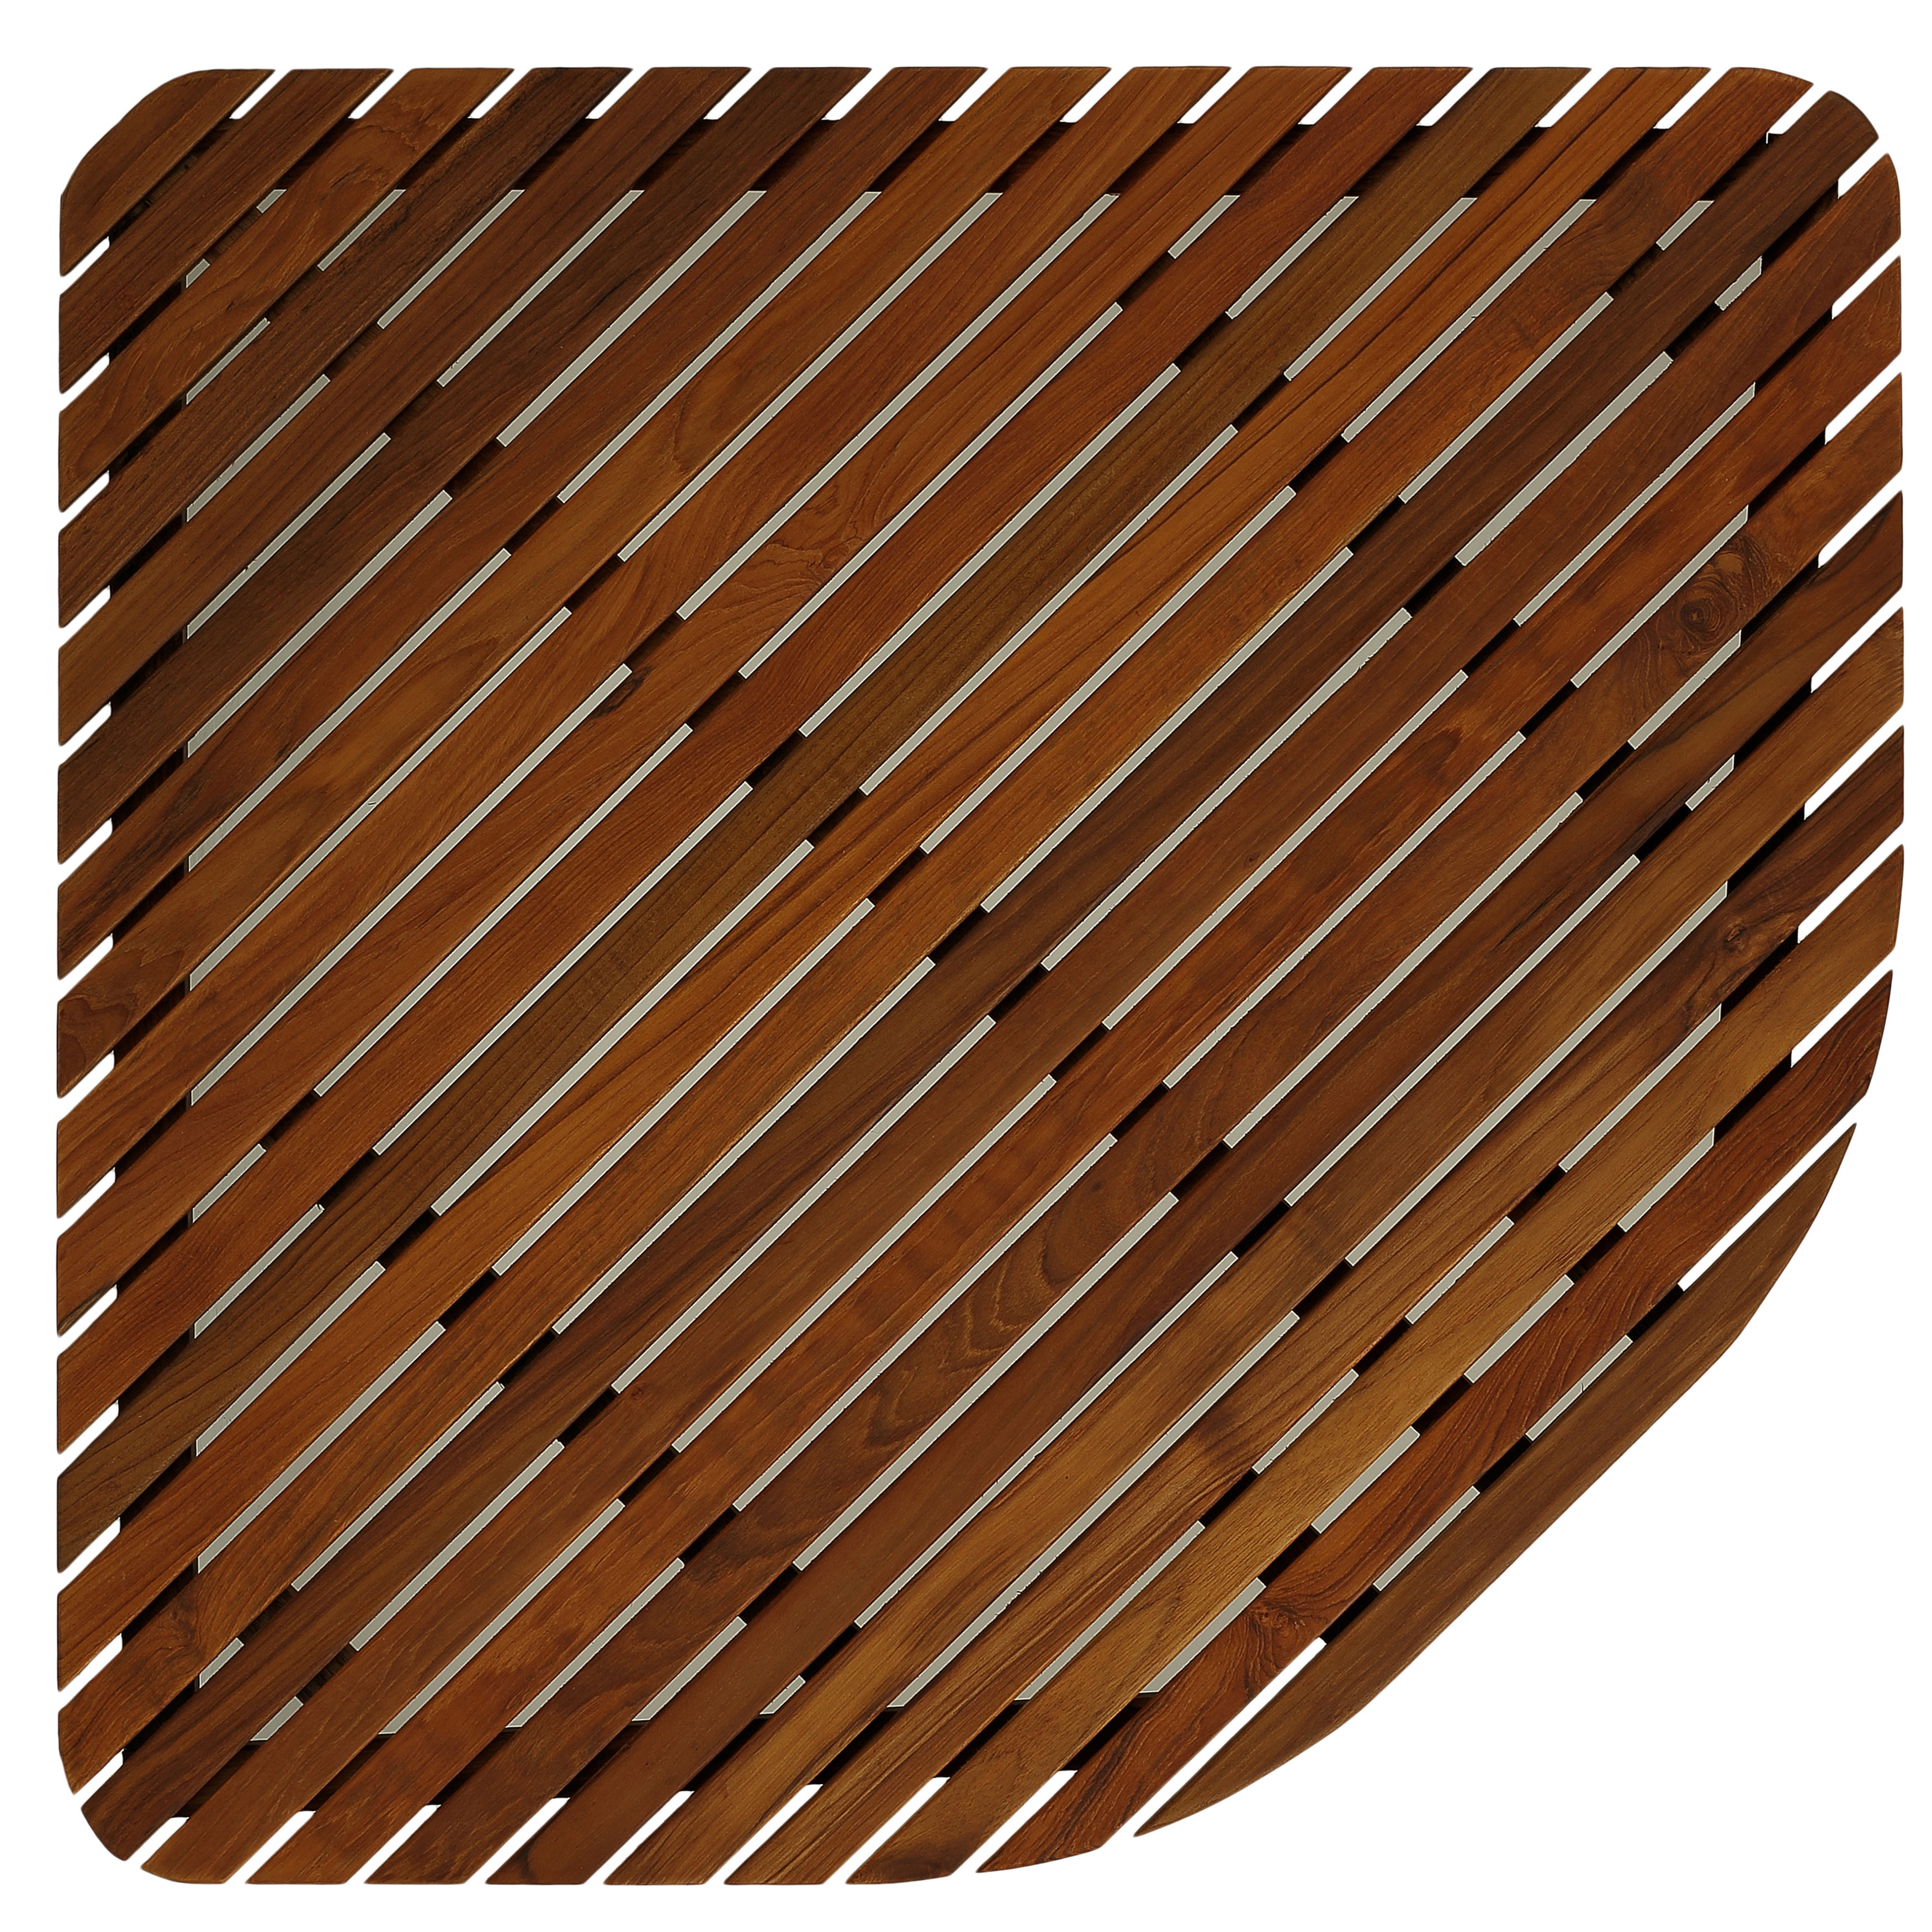 Bare Decor Erika Corner Shower Spa Mat in Solid Teak Wood and Oiled Finish,  X-Large, 30x 30 - Free Shipping Today - Overstock.com - 17621160